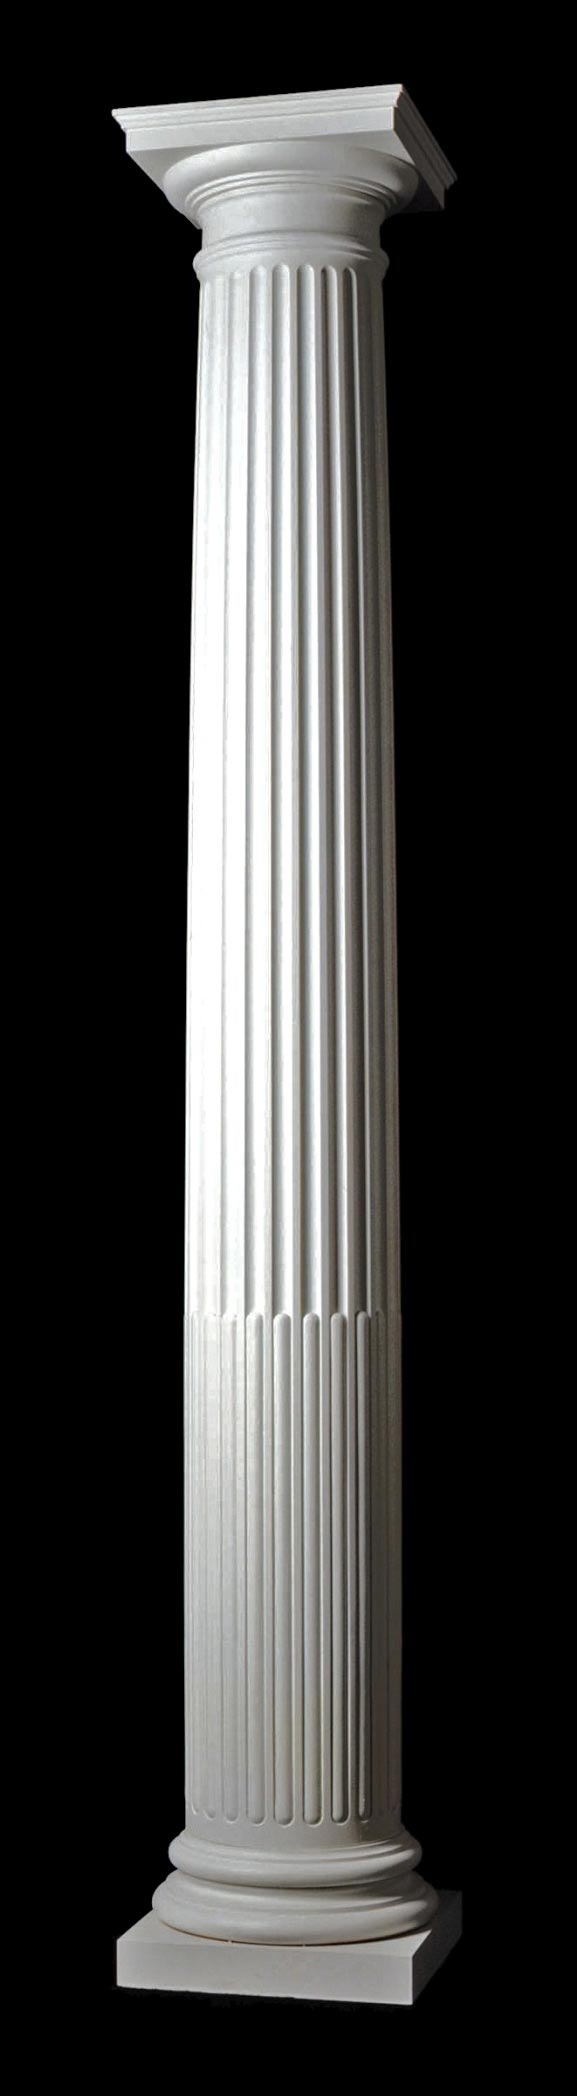 Chadsworth 39 s 1 800 columns fluted cabled roman doric for Architectural wood columns